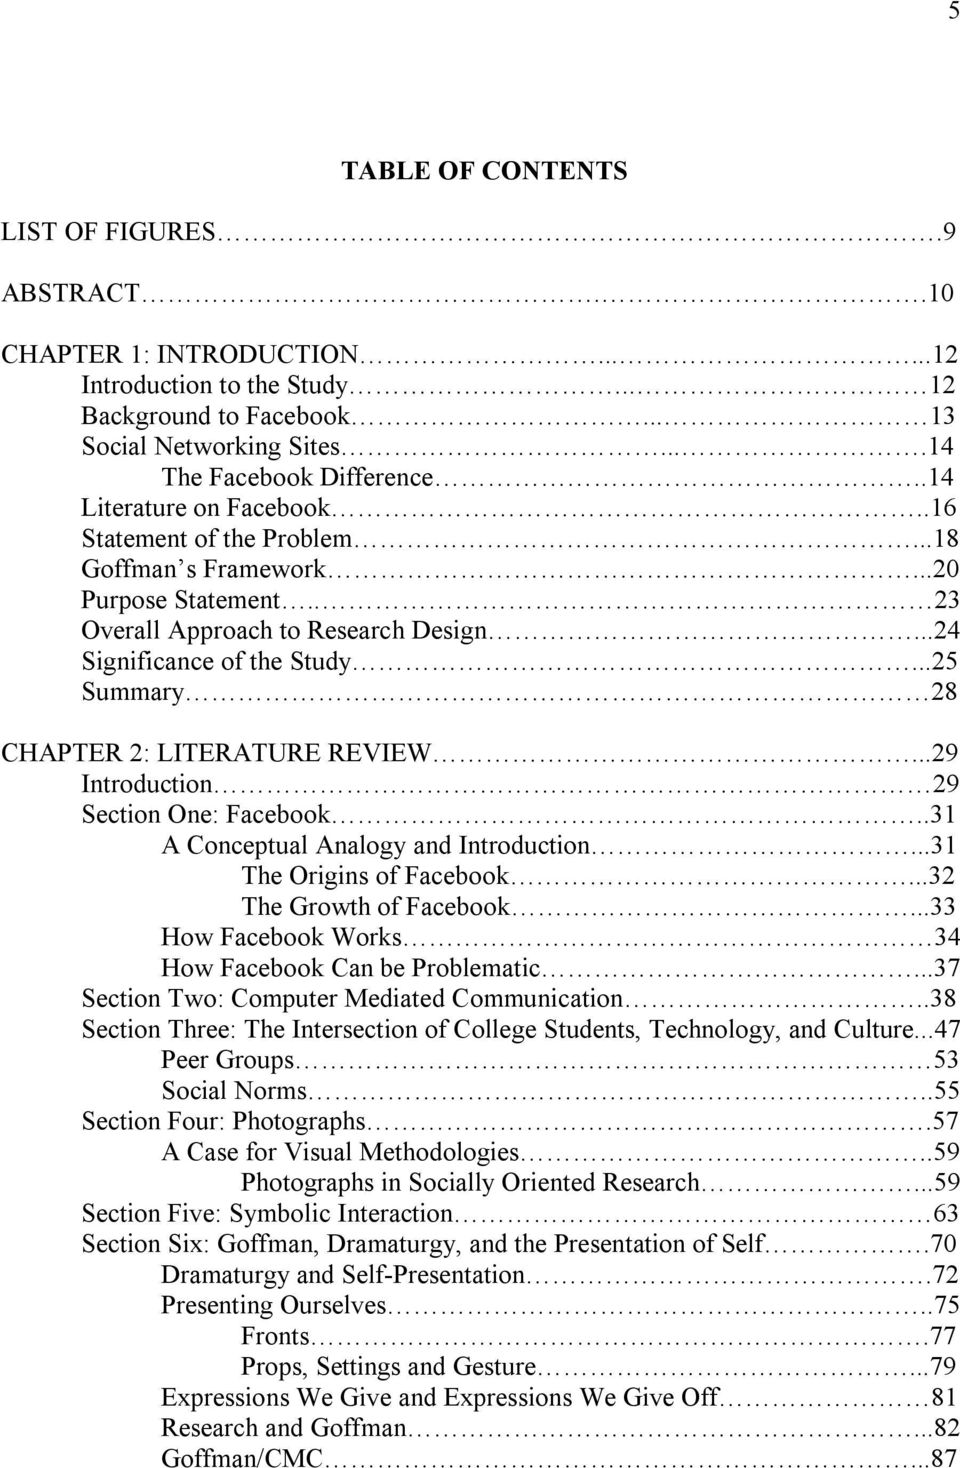 ..25 Summary 28 CHAPTER 2: LITERATURE REVIEW...29 Introduction 29 Section One: Facebook..31 A Conceptual Analogy and Introduction...31 The Origins of Facebook...32 The Growth of Facebook.